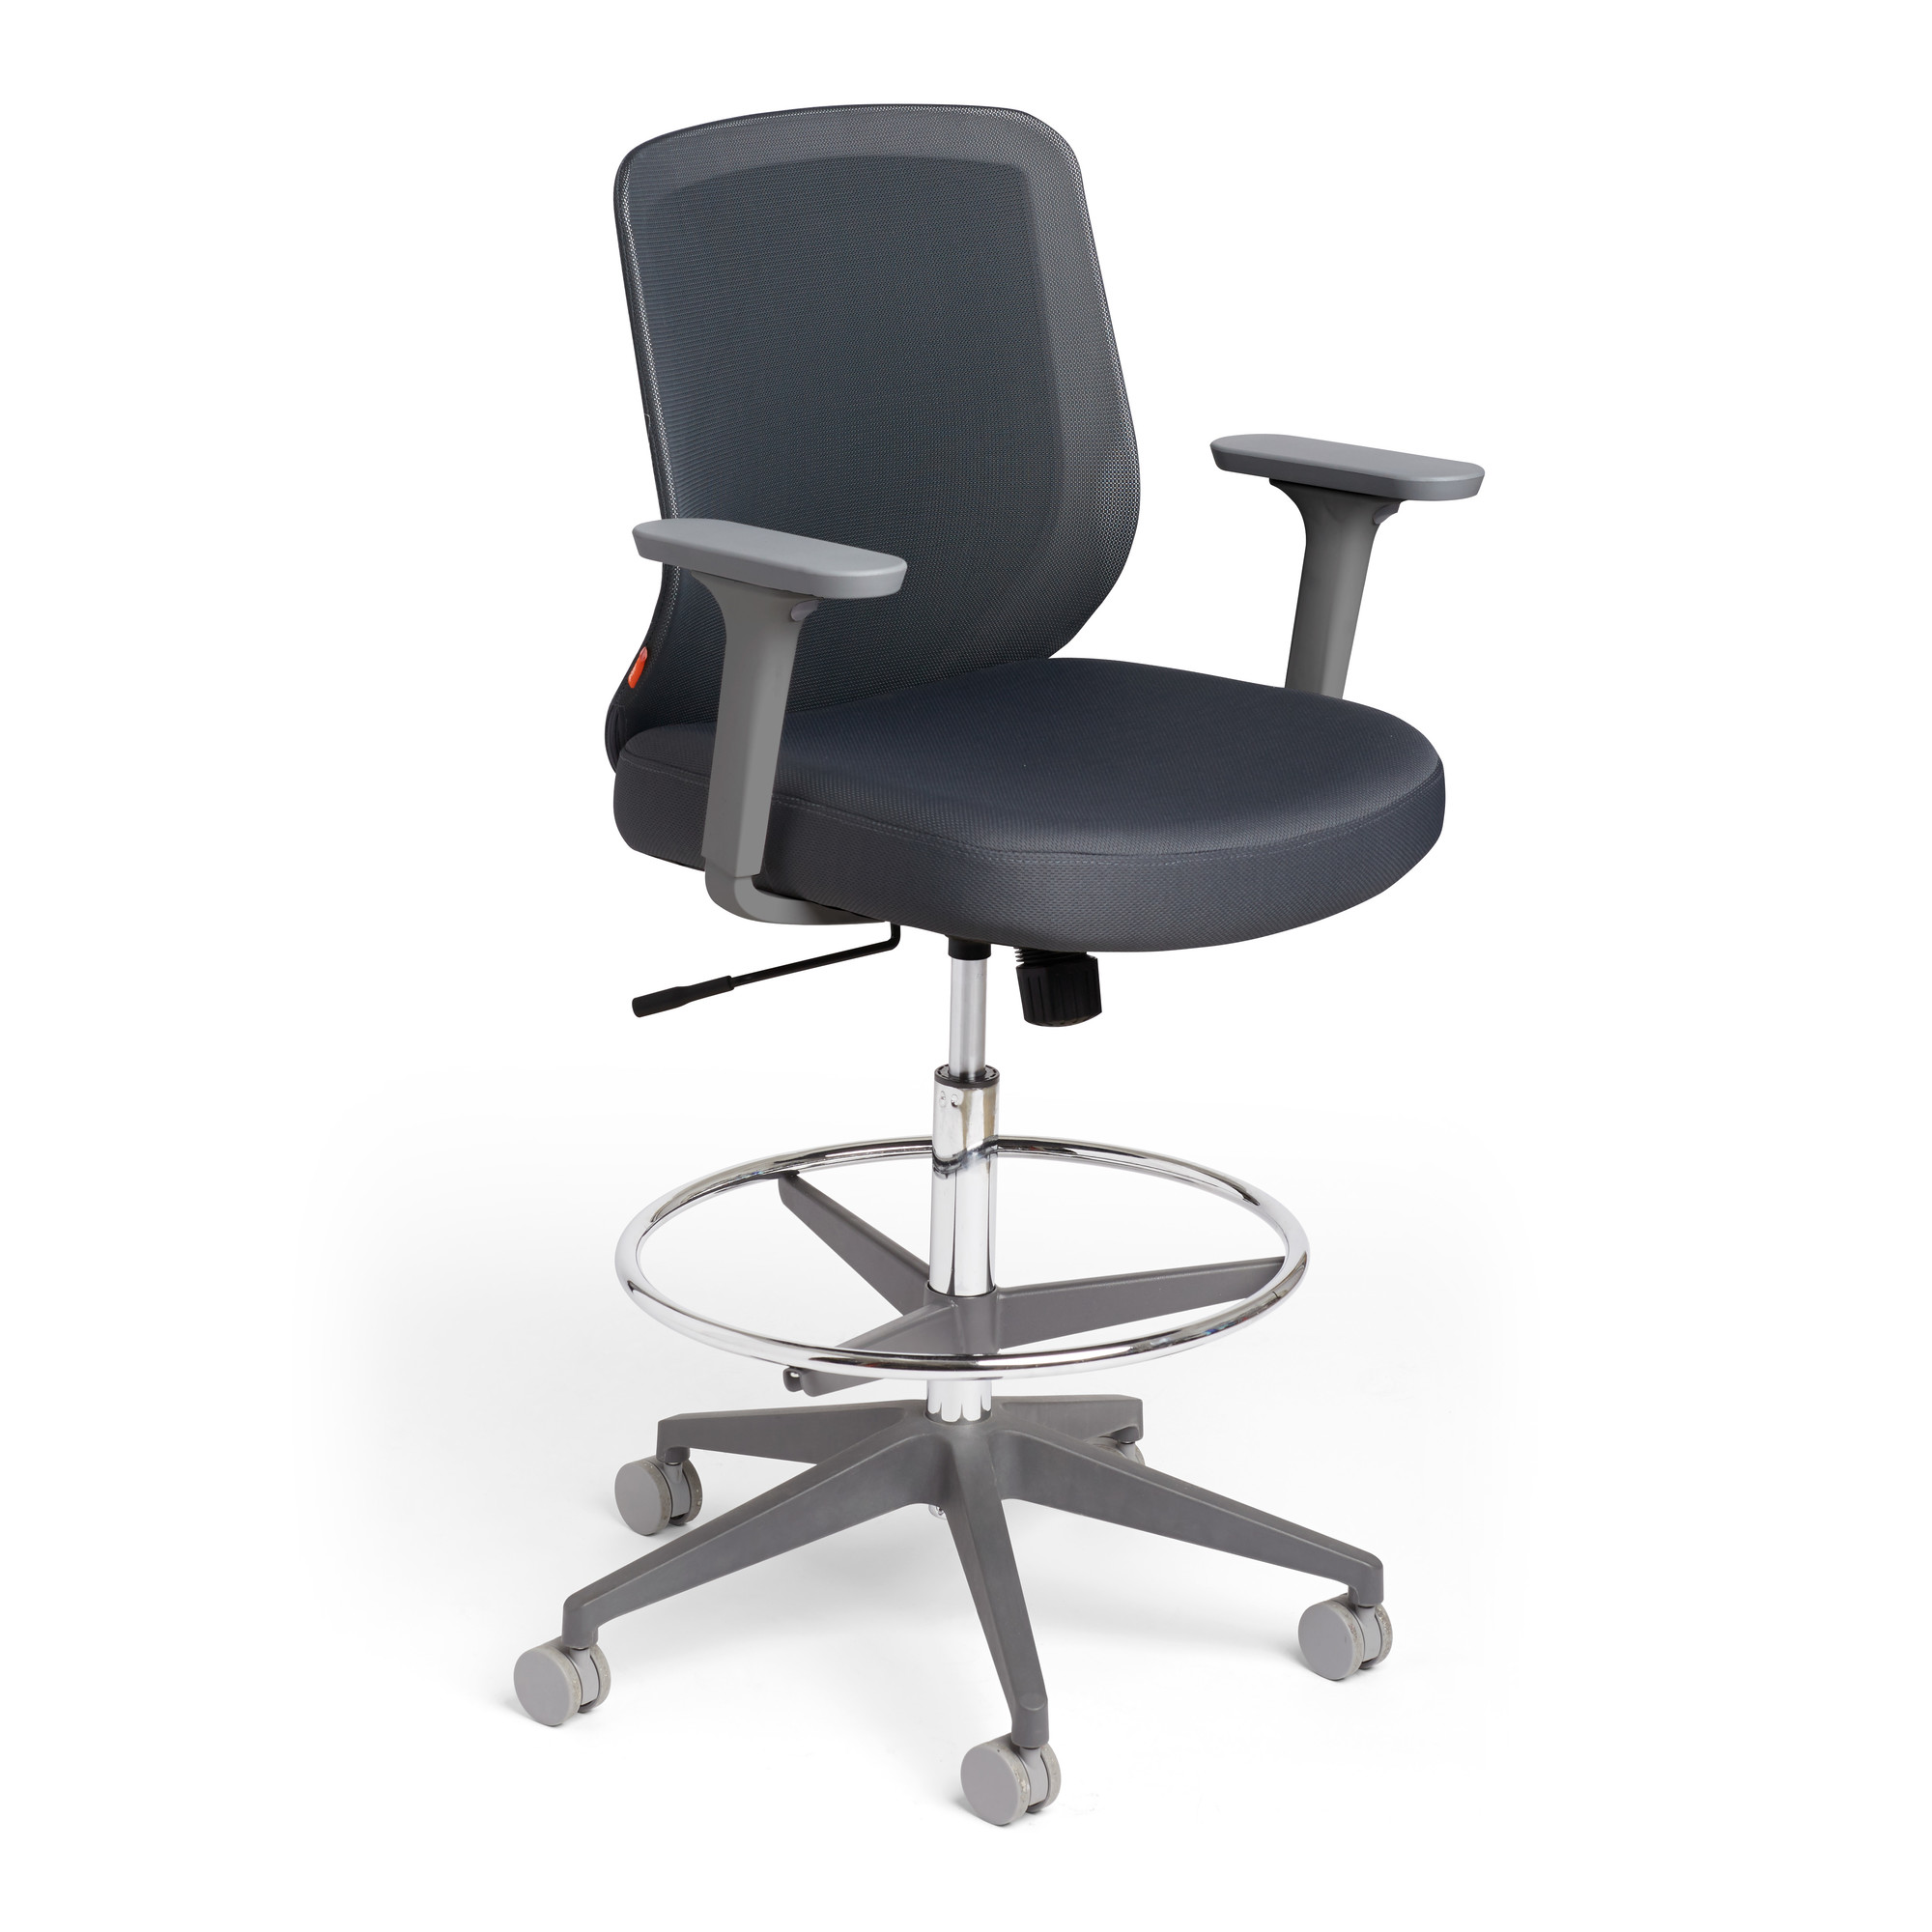 Big And Drafting Chair Presto Ergonomic Big And Heavy